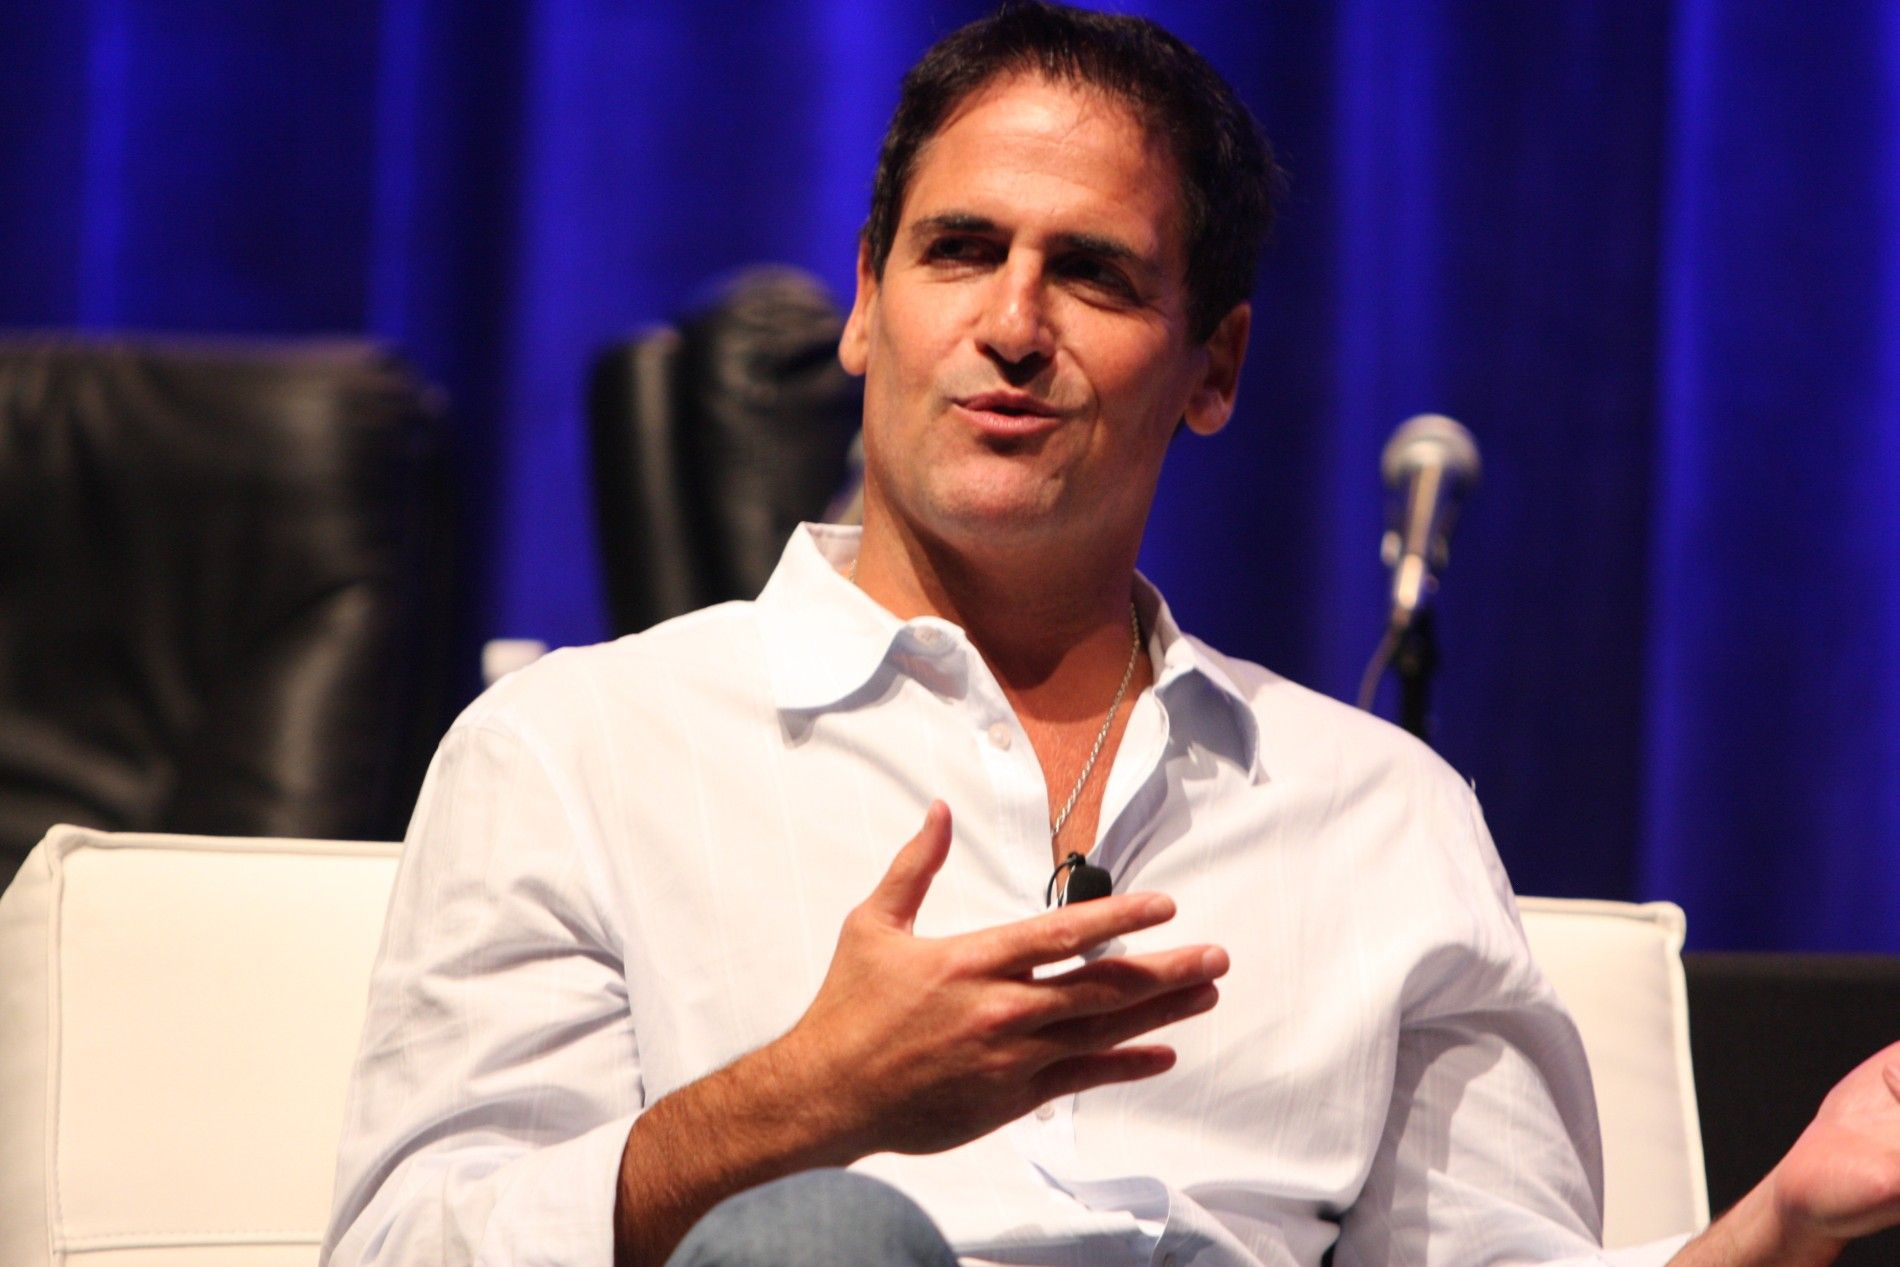 MARK CUBAN'S 12 ESSENTIAL RULES FOR STARTUPS---Mark Cuban is an American businessman, investor, film producer, author, television personality and philanthropist. Between all of that, he somehow manages to give excellent advice to people considering starting their own companies. Here are his 12 rules for startups.